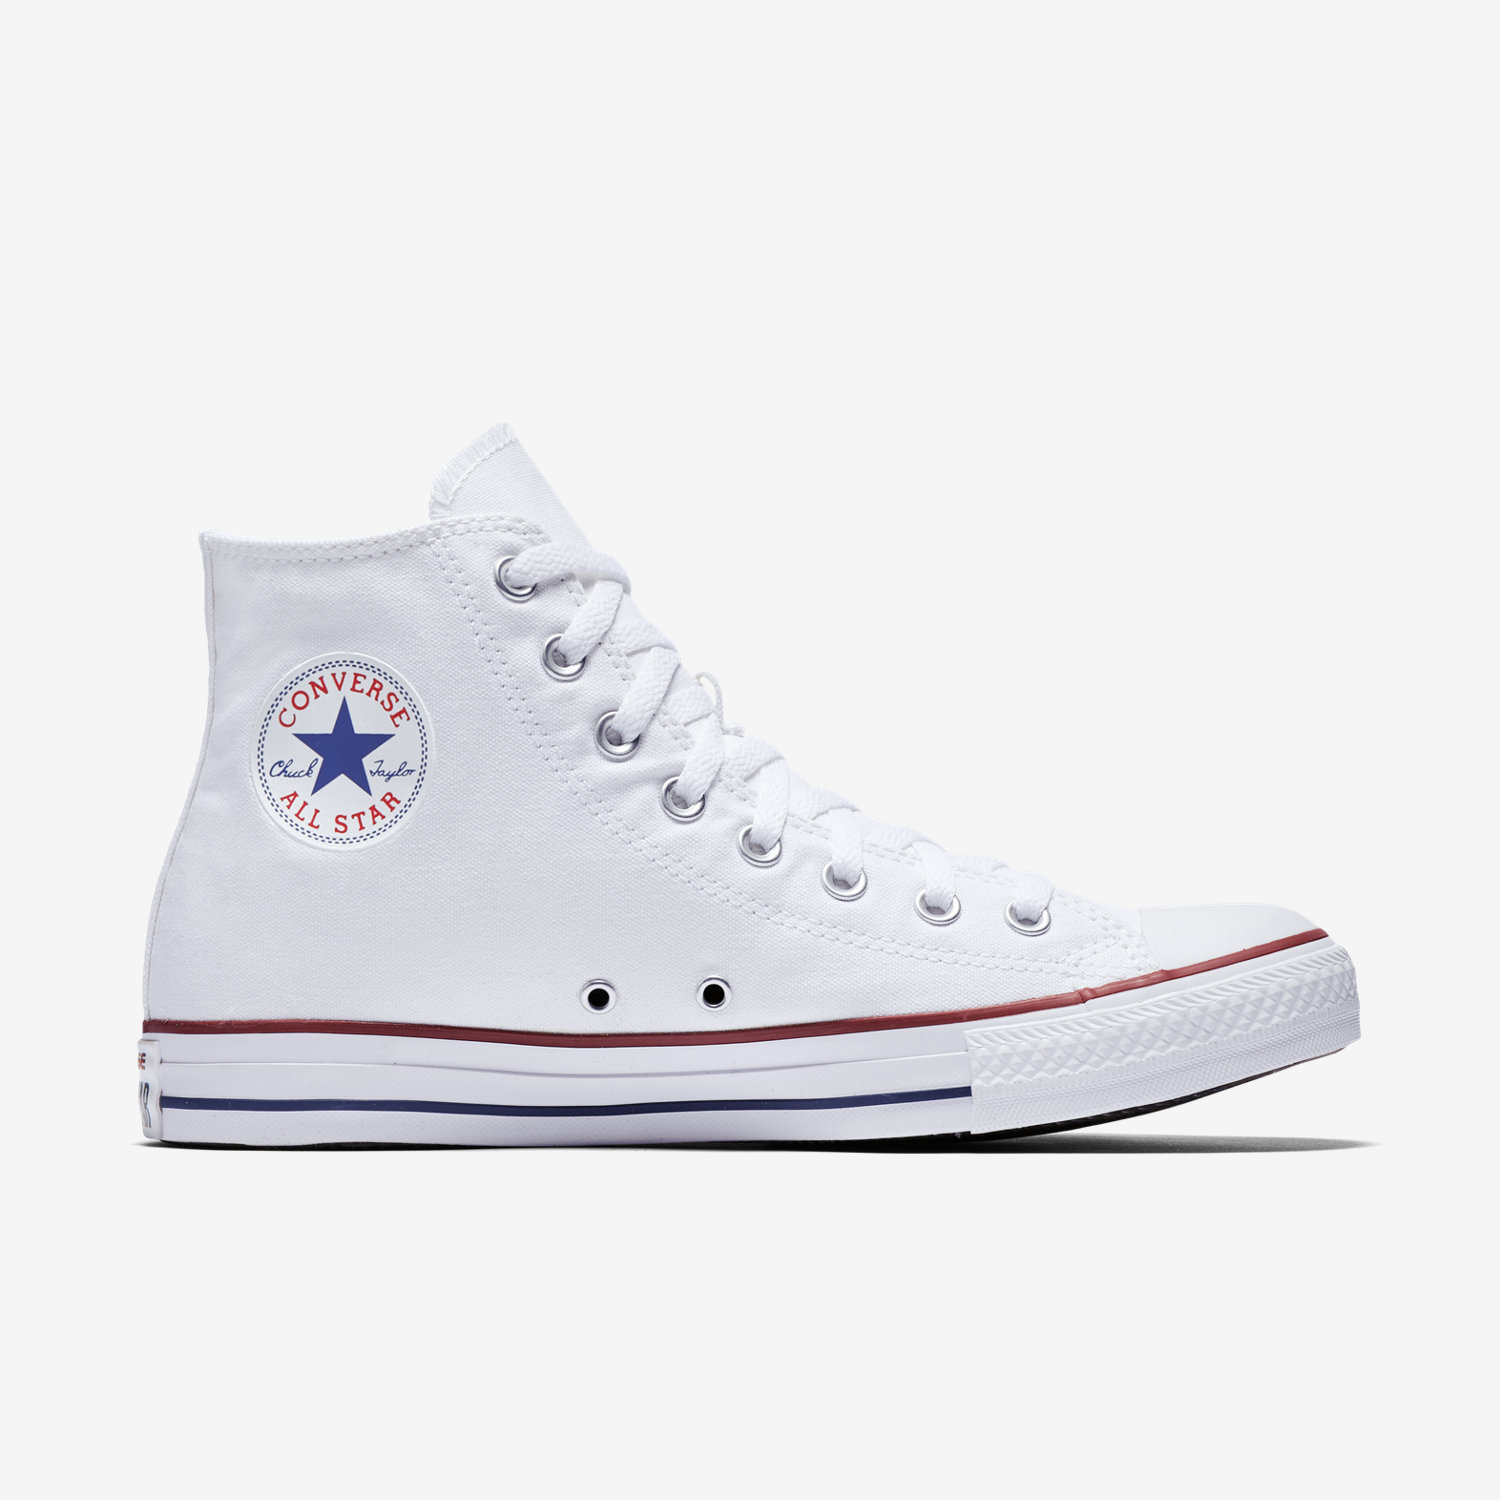 All white converse – The Classy Option For you.